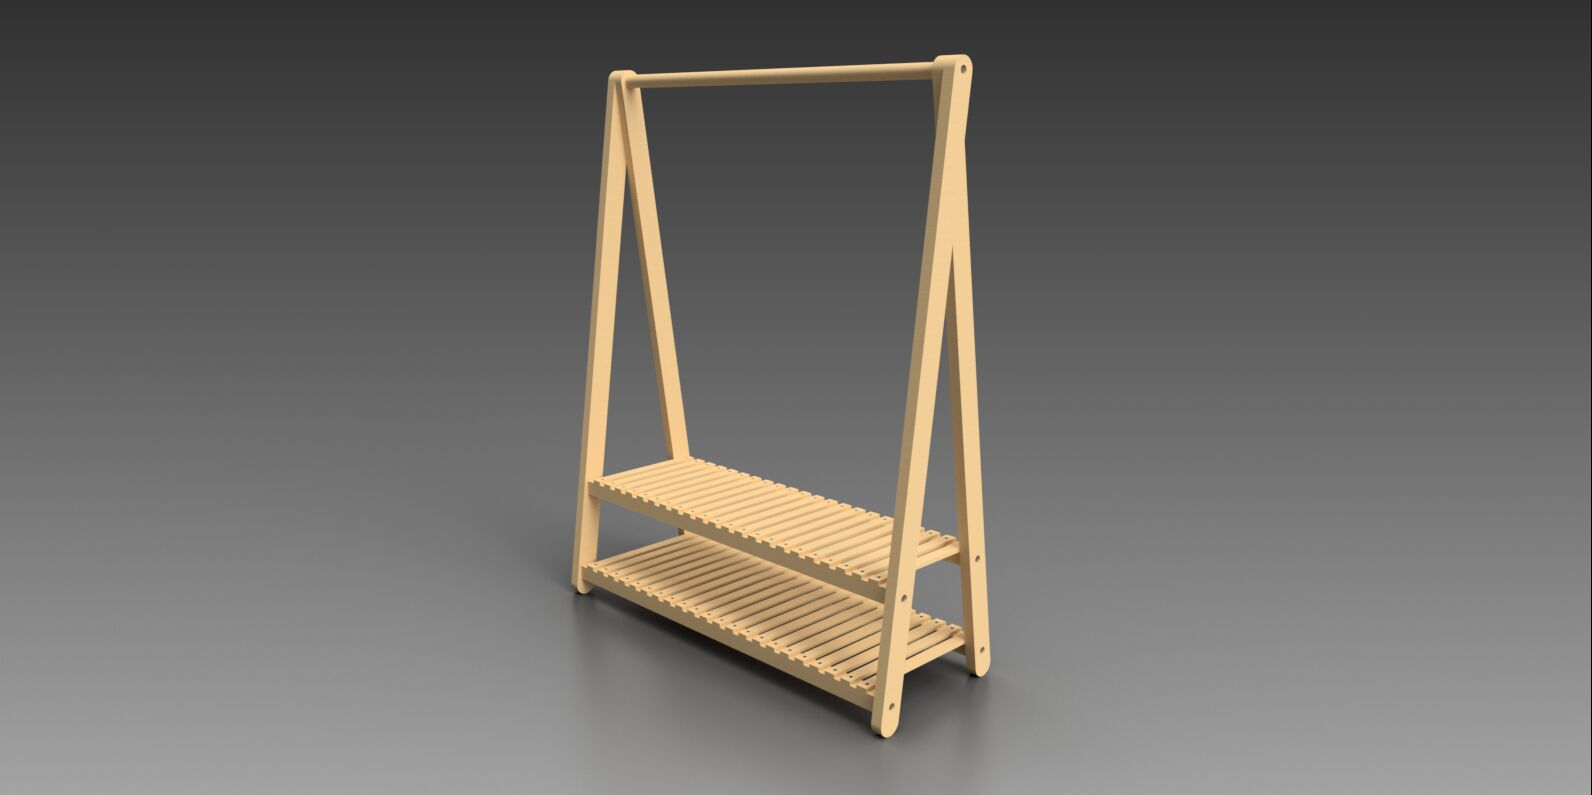 A Clothes Horse Autodesk Online Gallery